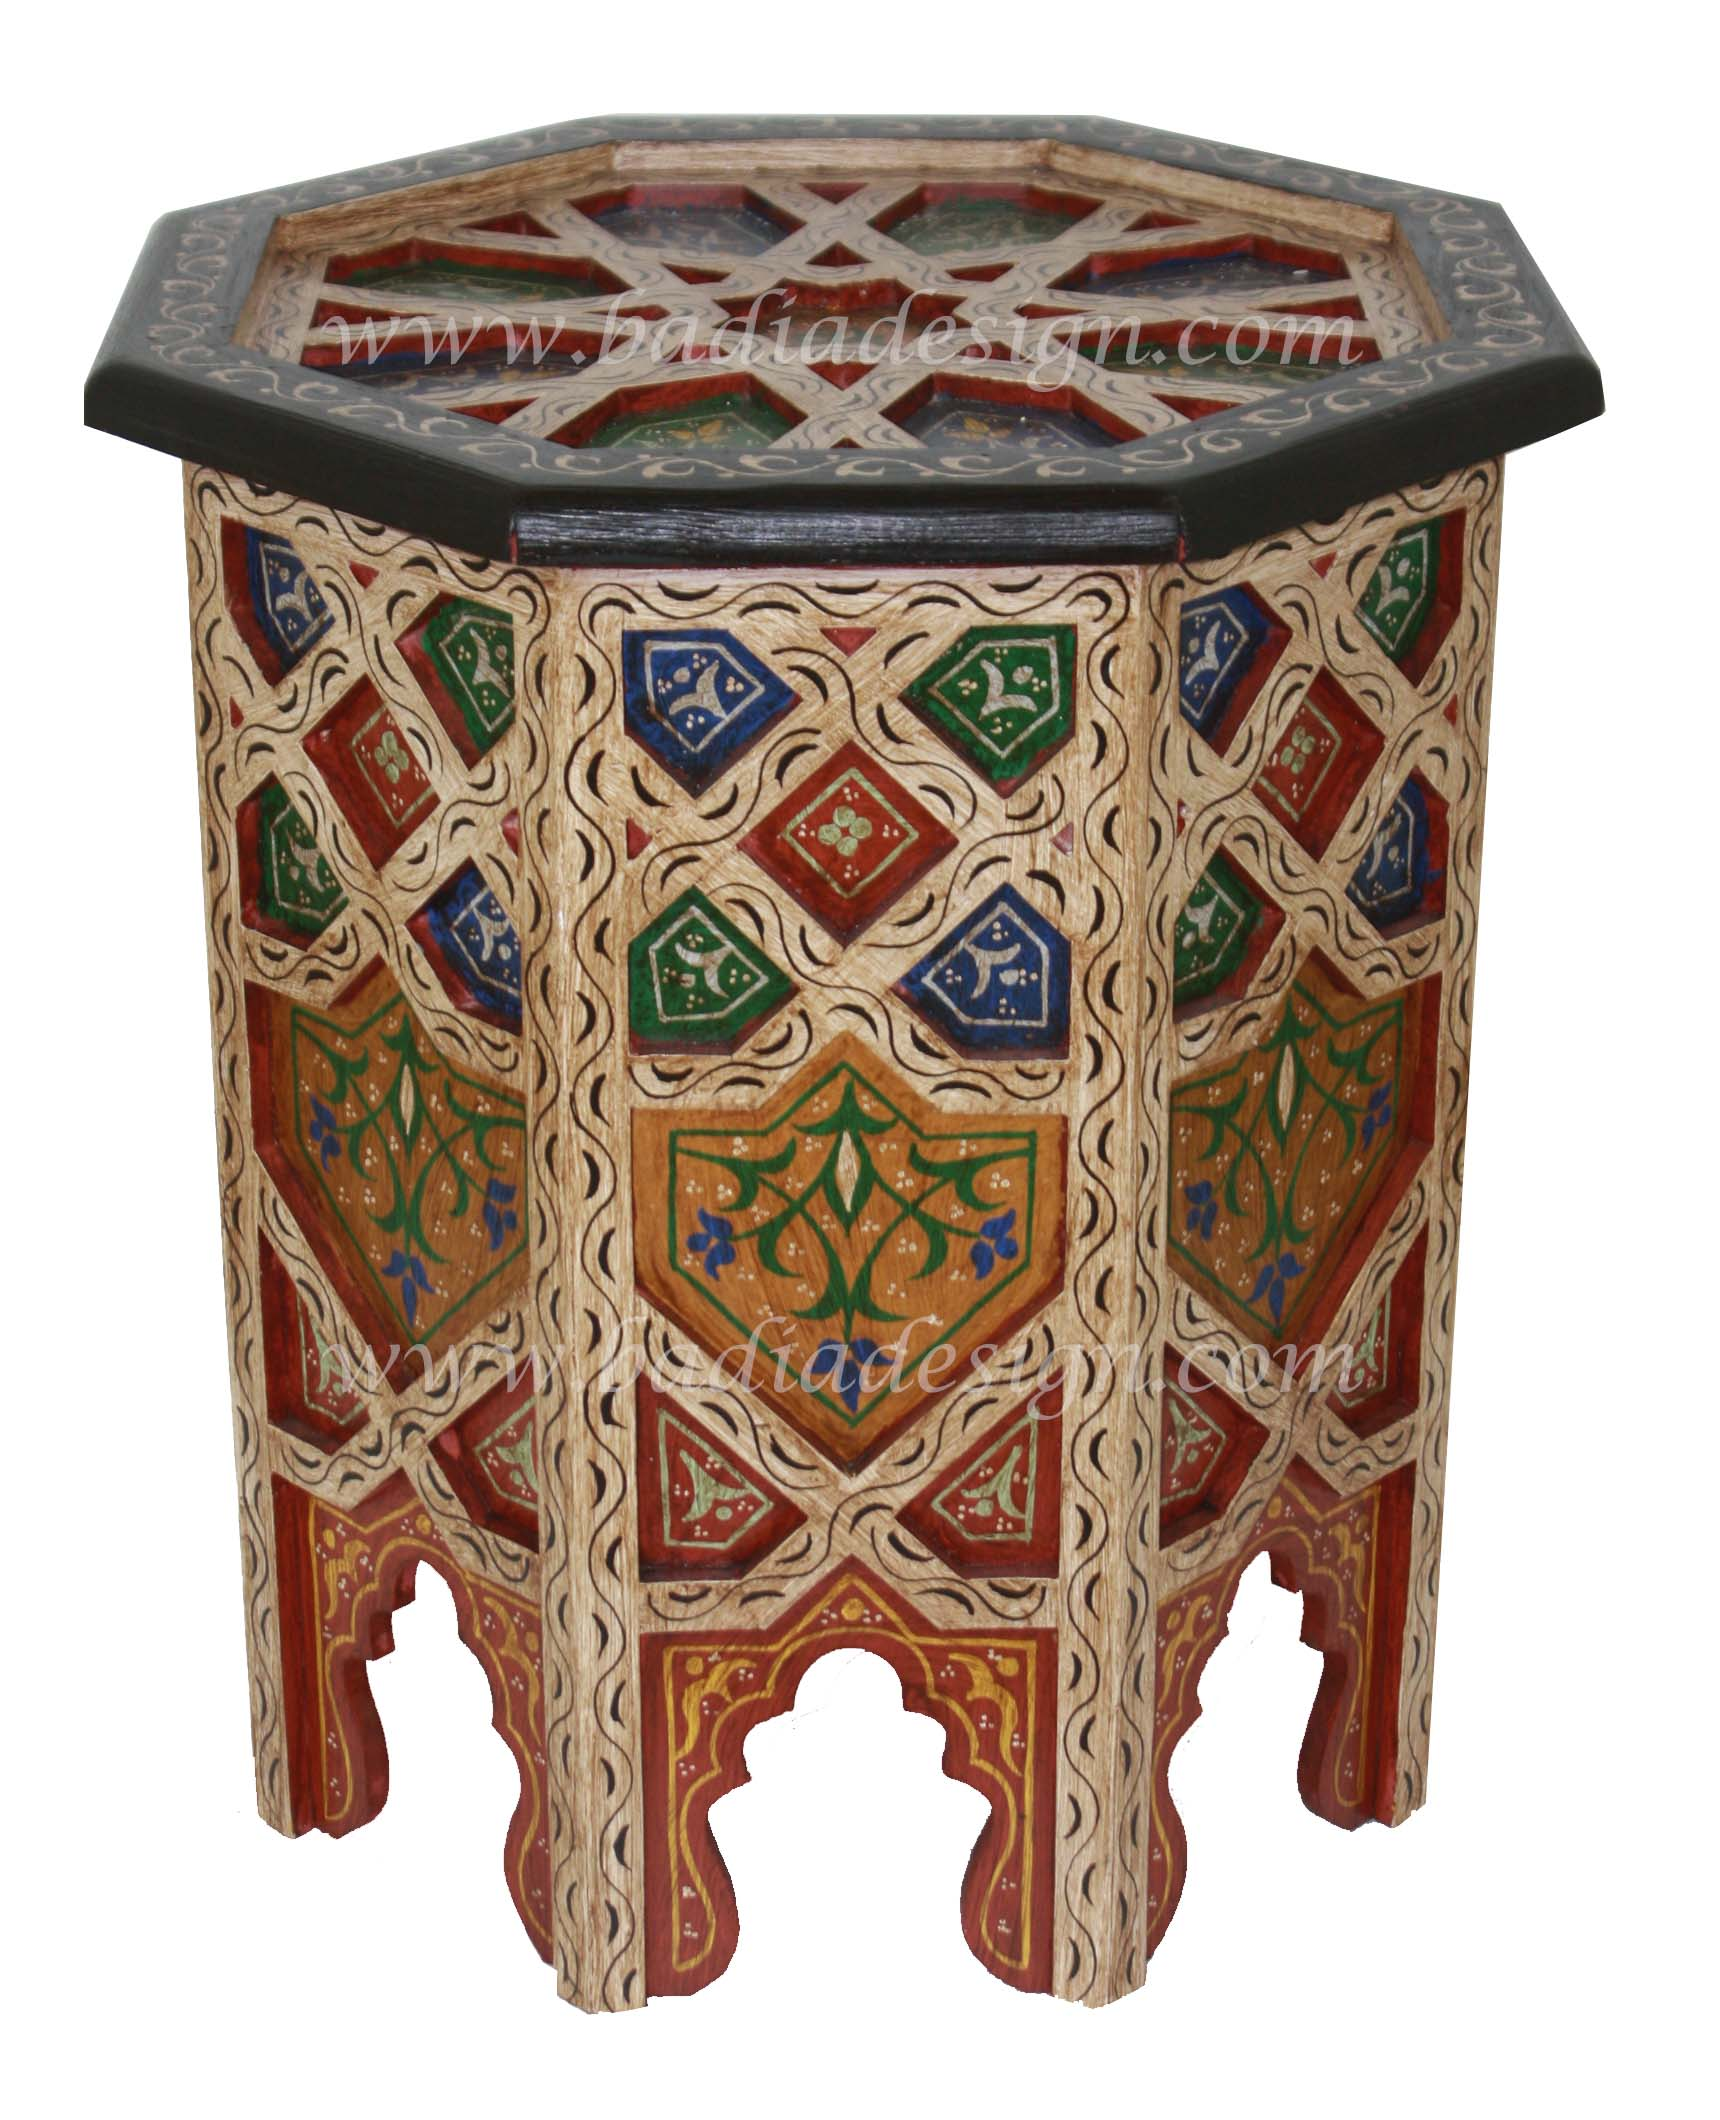 moroccan-carved-wood-hand-painted-side-table-hp014-1.jpg